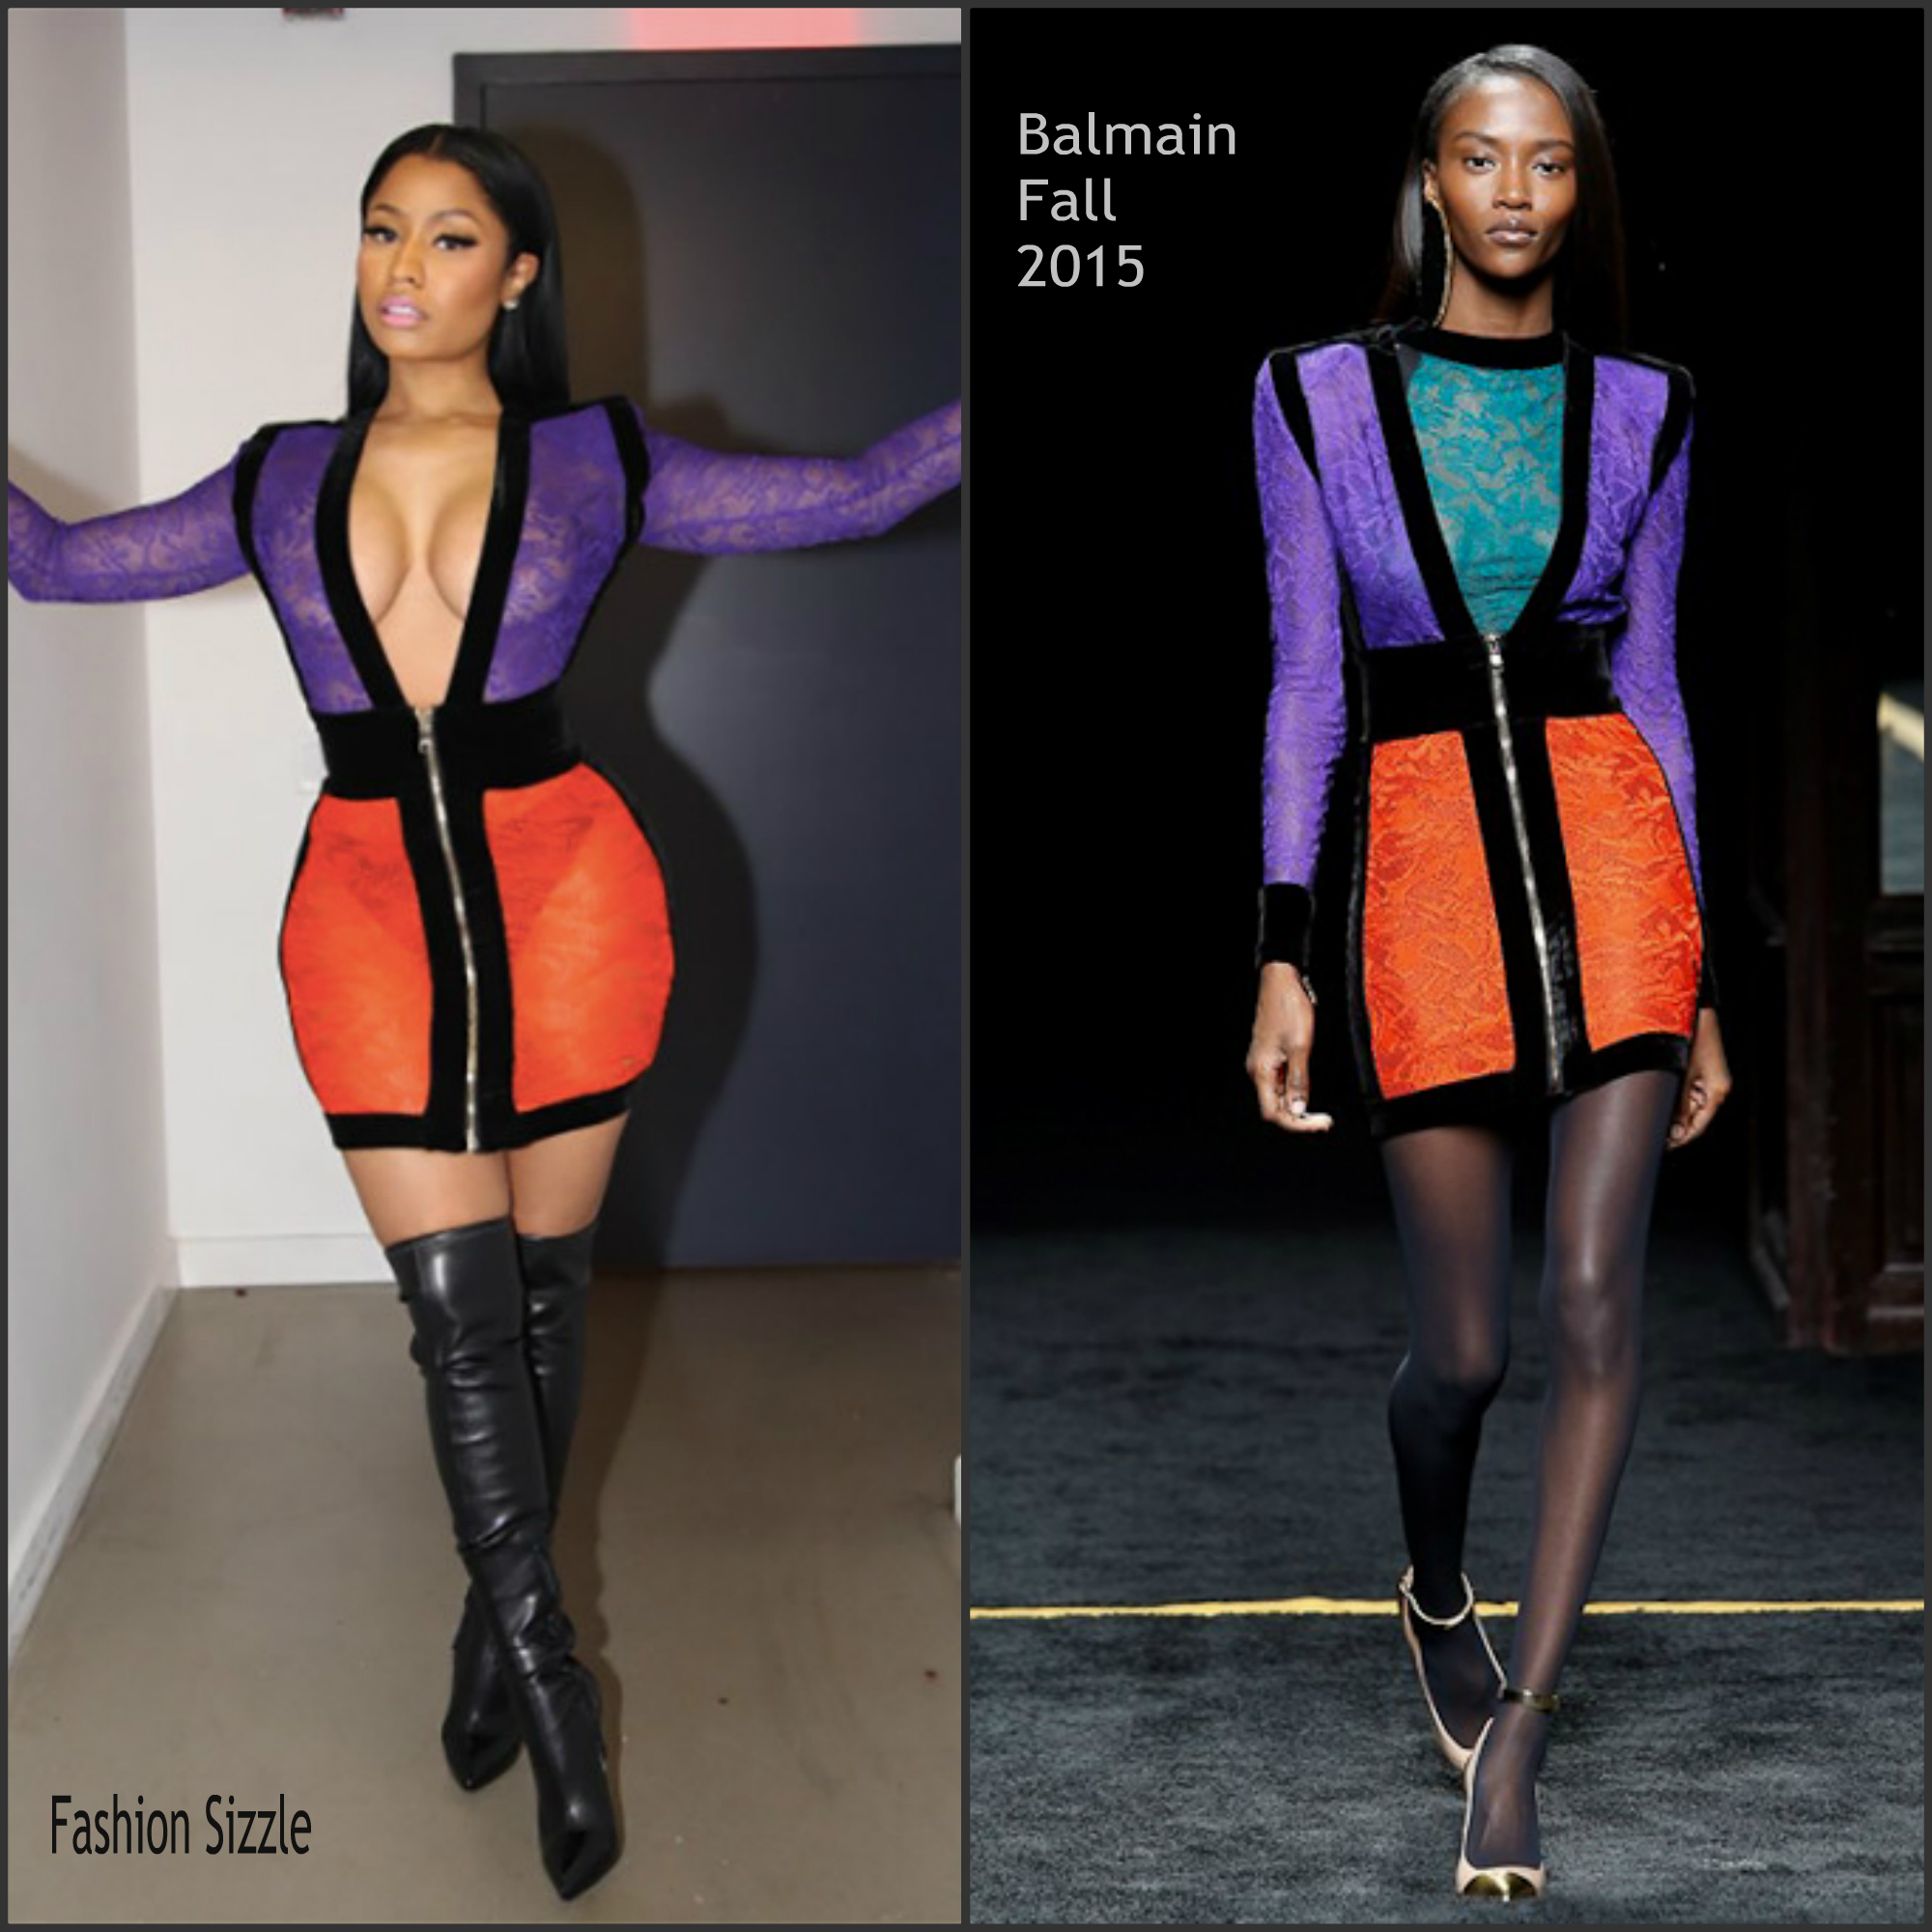 nicki-minaj-in-balmain-snl